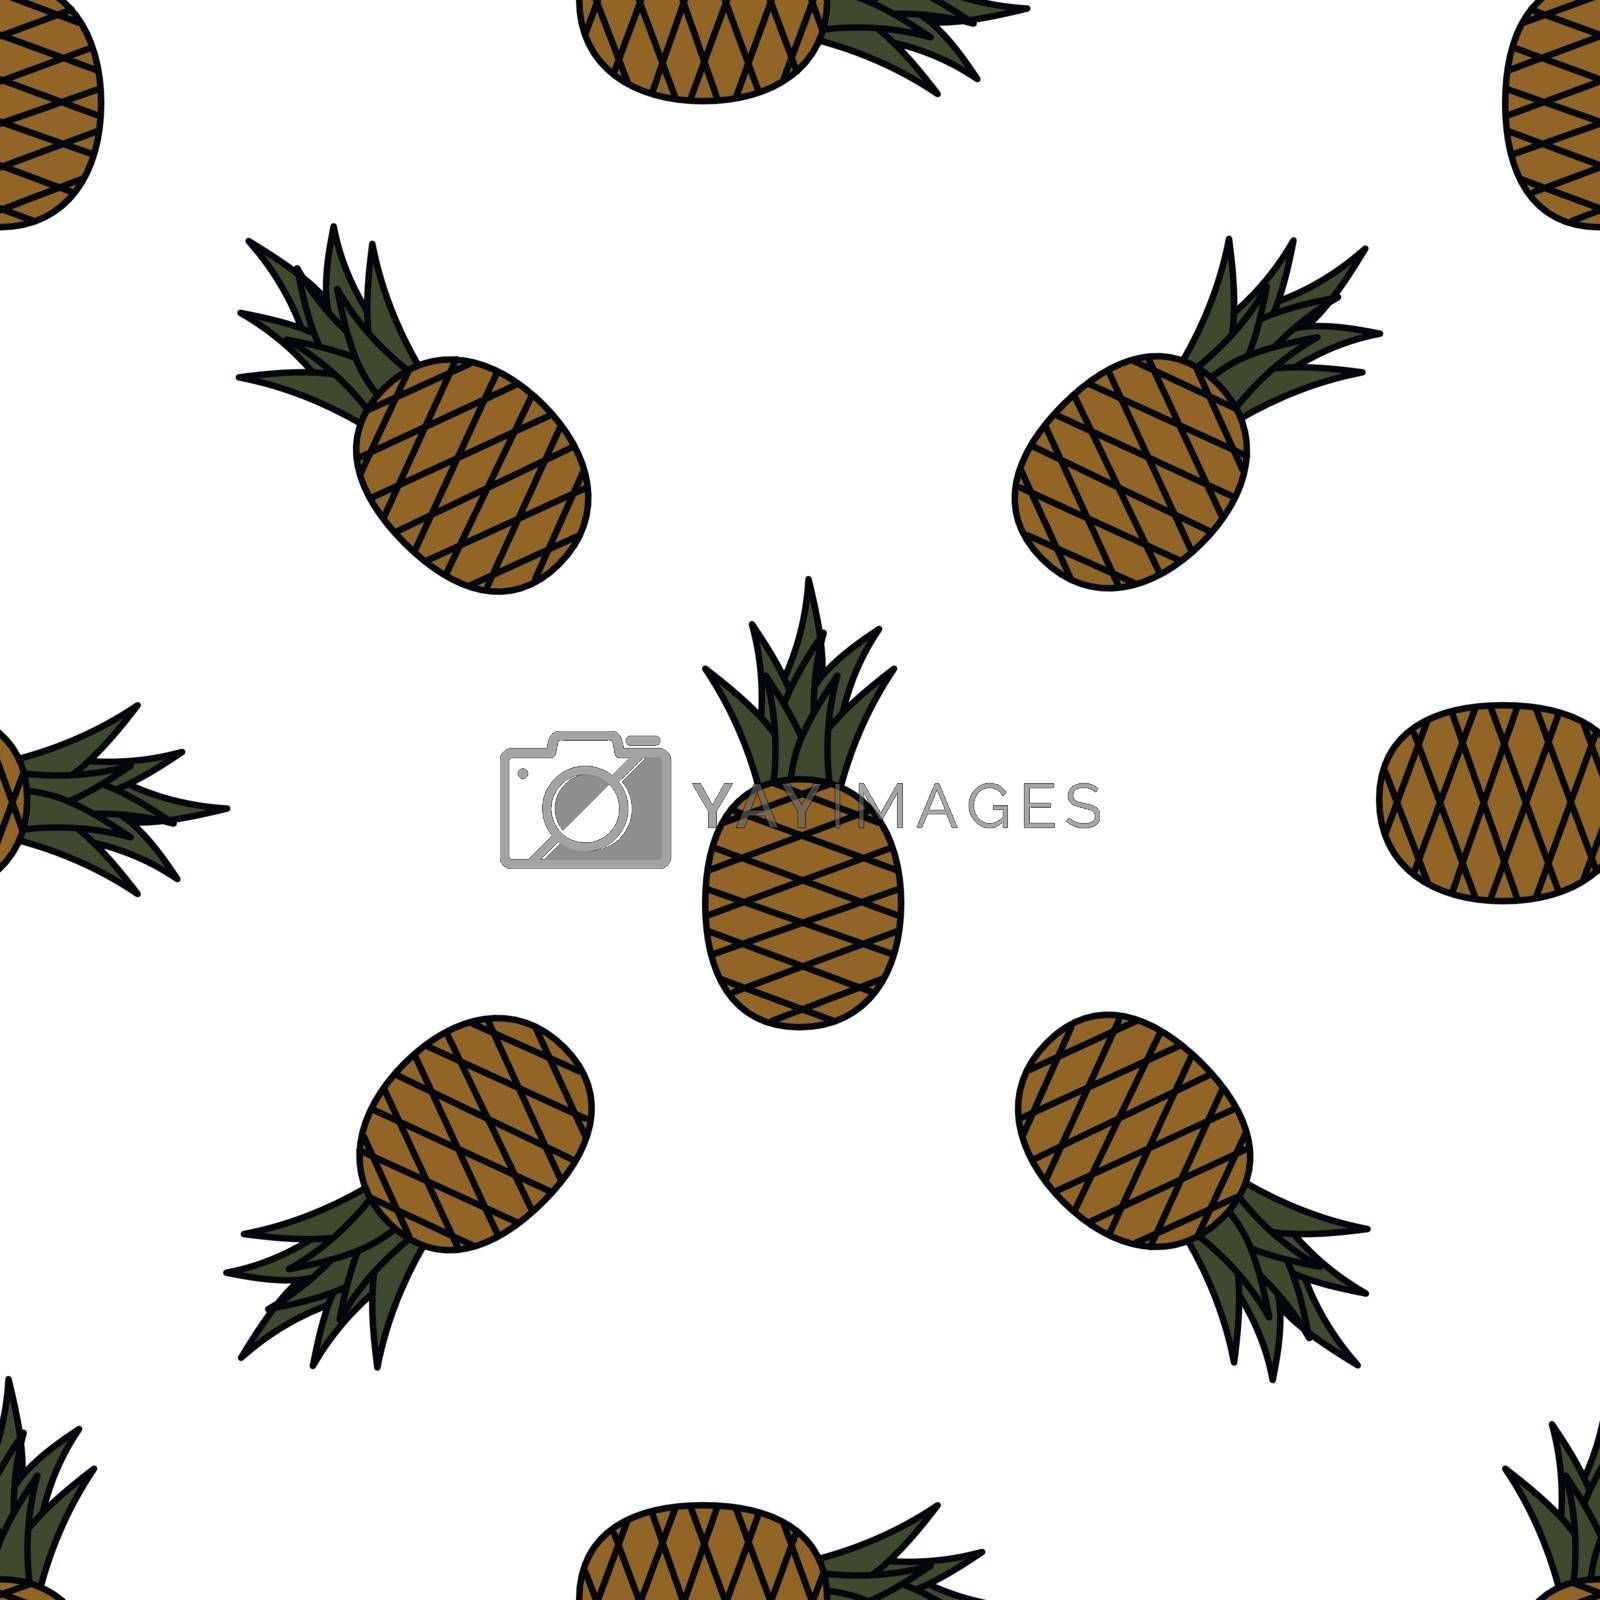 Seamless pineapple pattern. Cartoon pineapples on white background. Tropical fruits pattern for textile, wallpapers, web, food seasonal card. Vector illustration